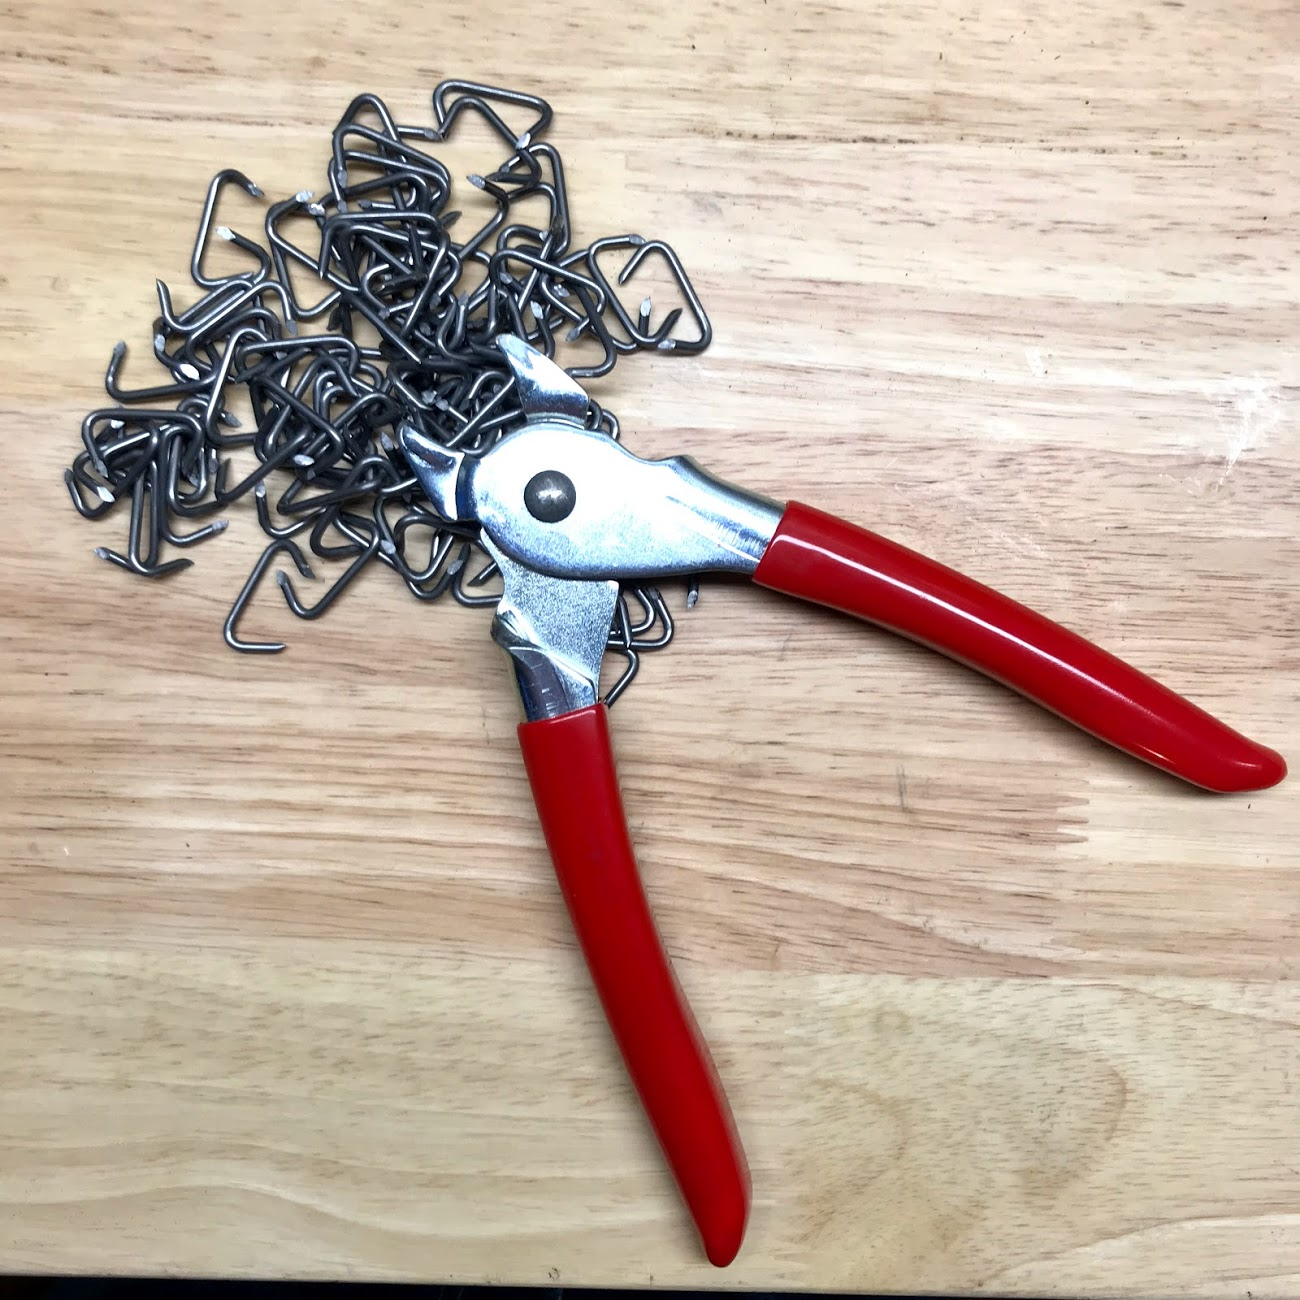 The right tool for the job. there are lots of hog rings in a pair of seats. If I was doing another pair of seats I would buy a nicer set of hog ring pliers. Don't be cheap on this tool.